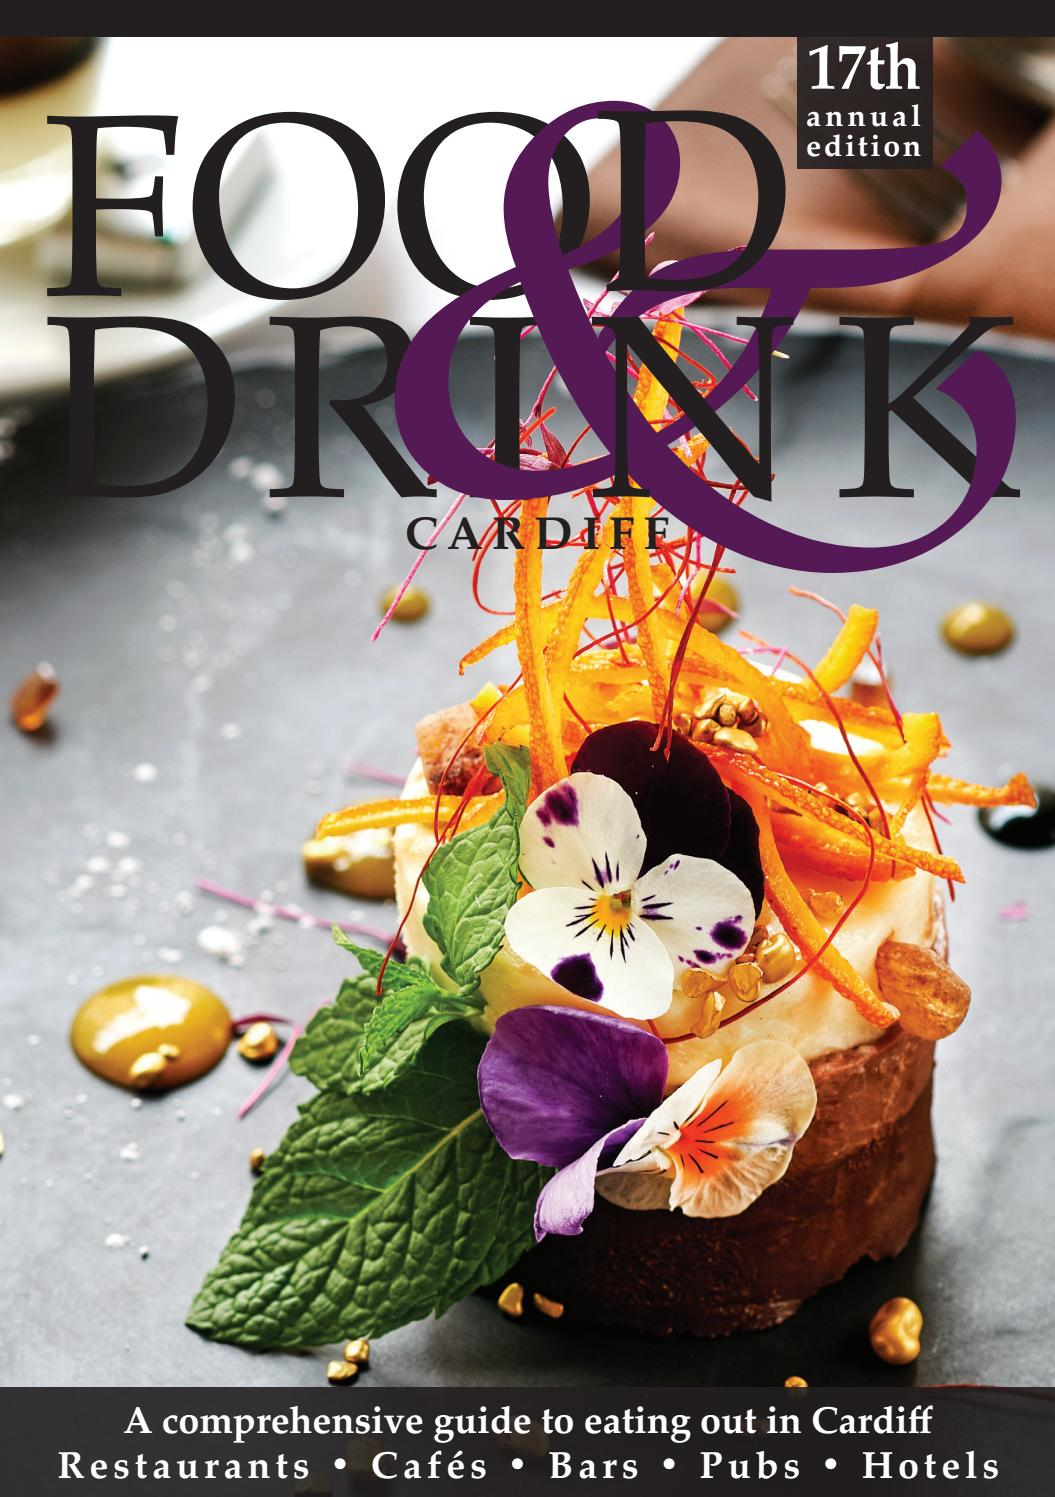 Cardiff Food Drink Guide 2019 By Food Drink Guides Issuu